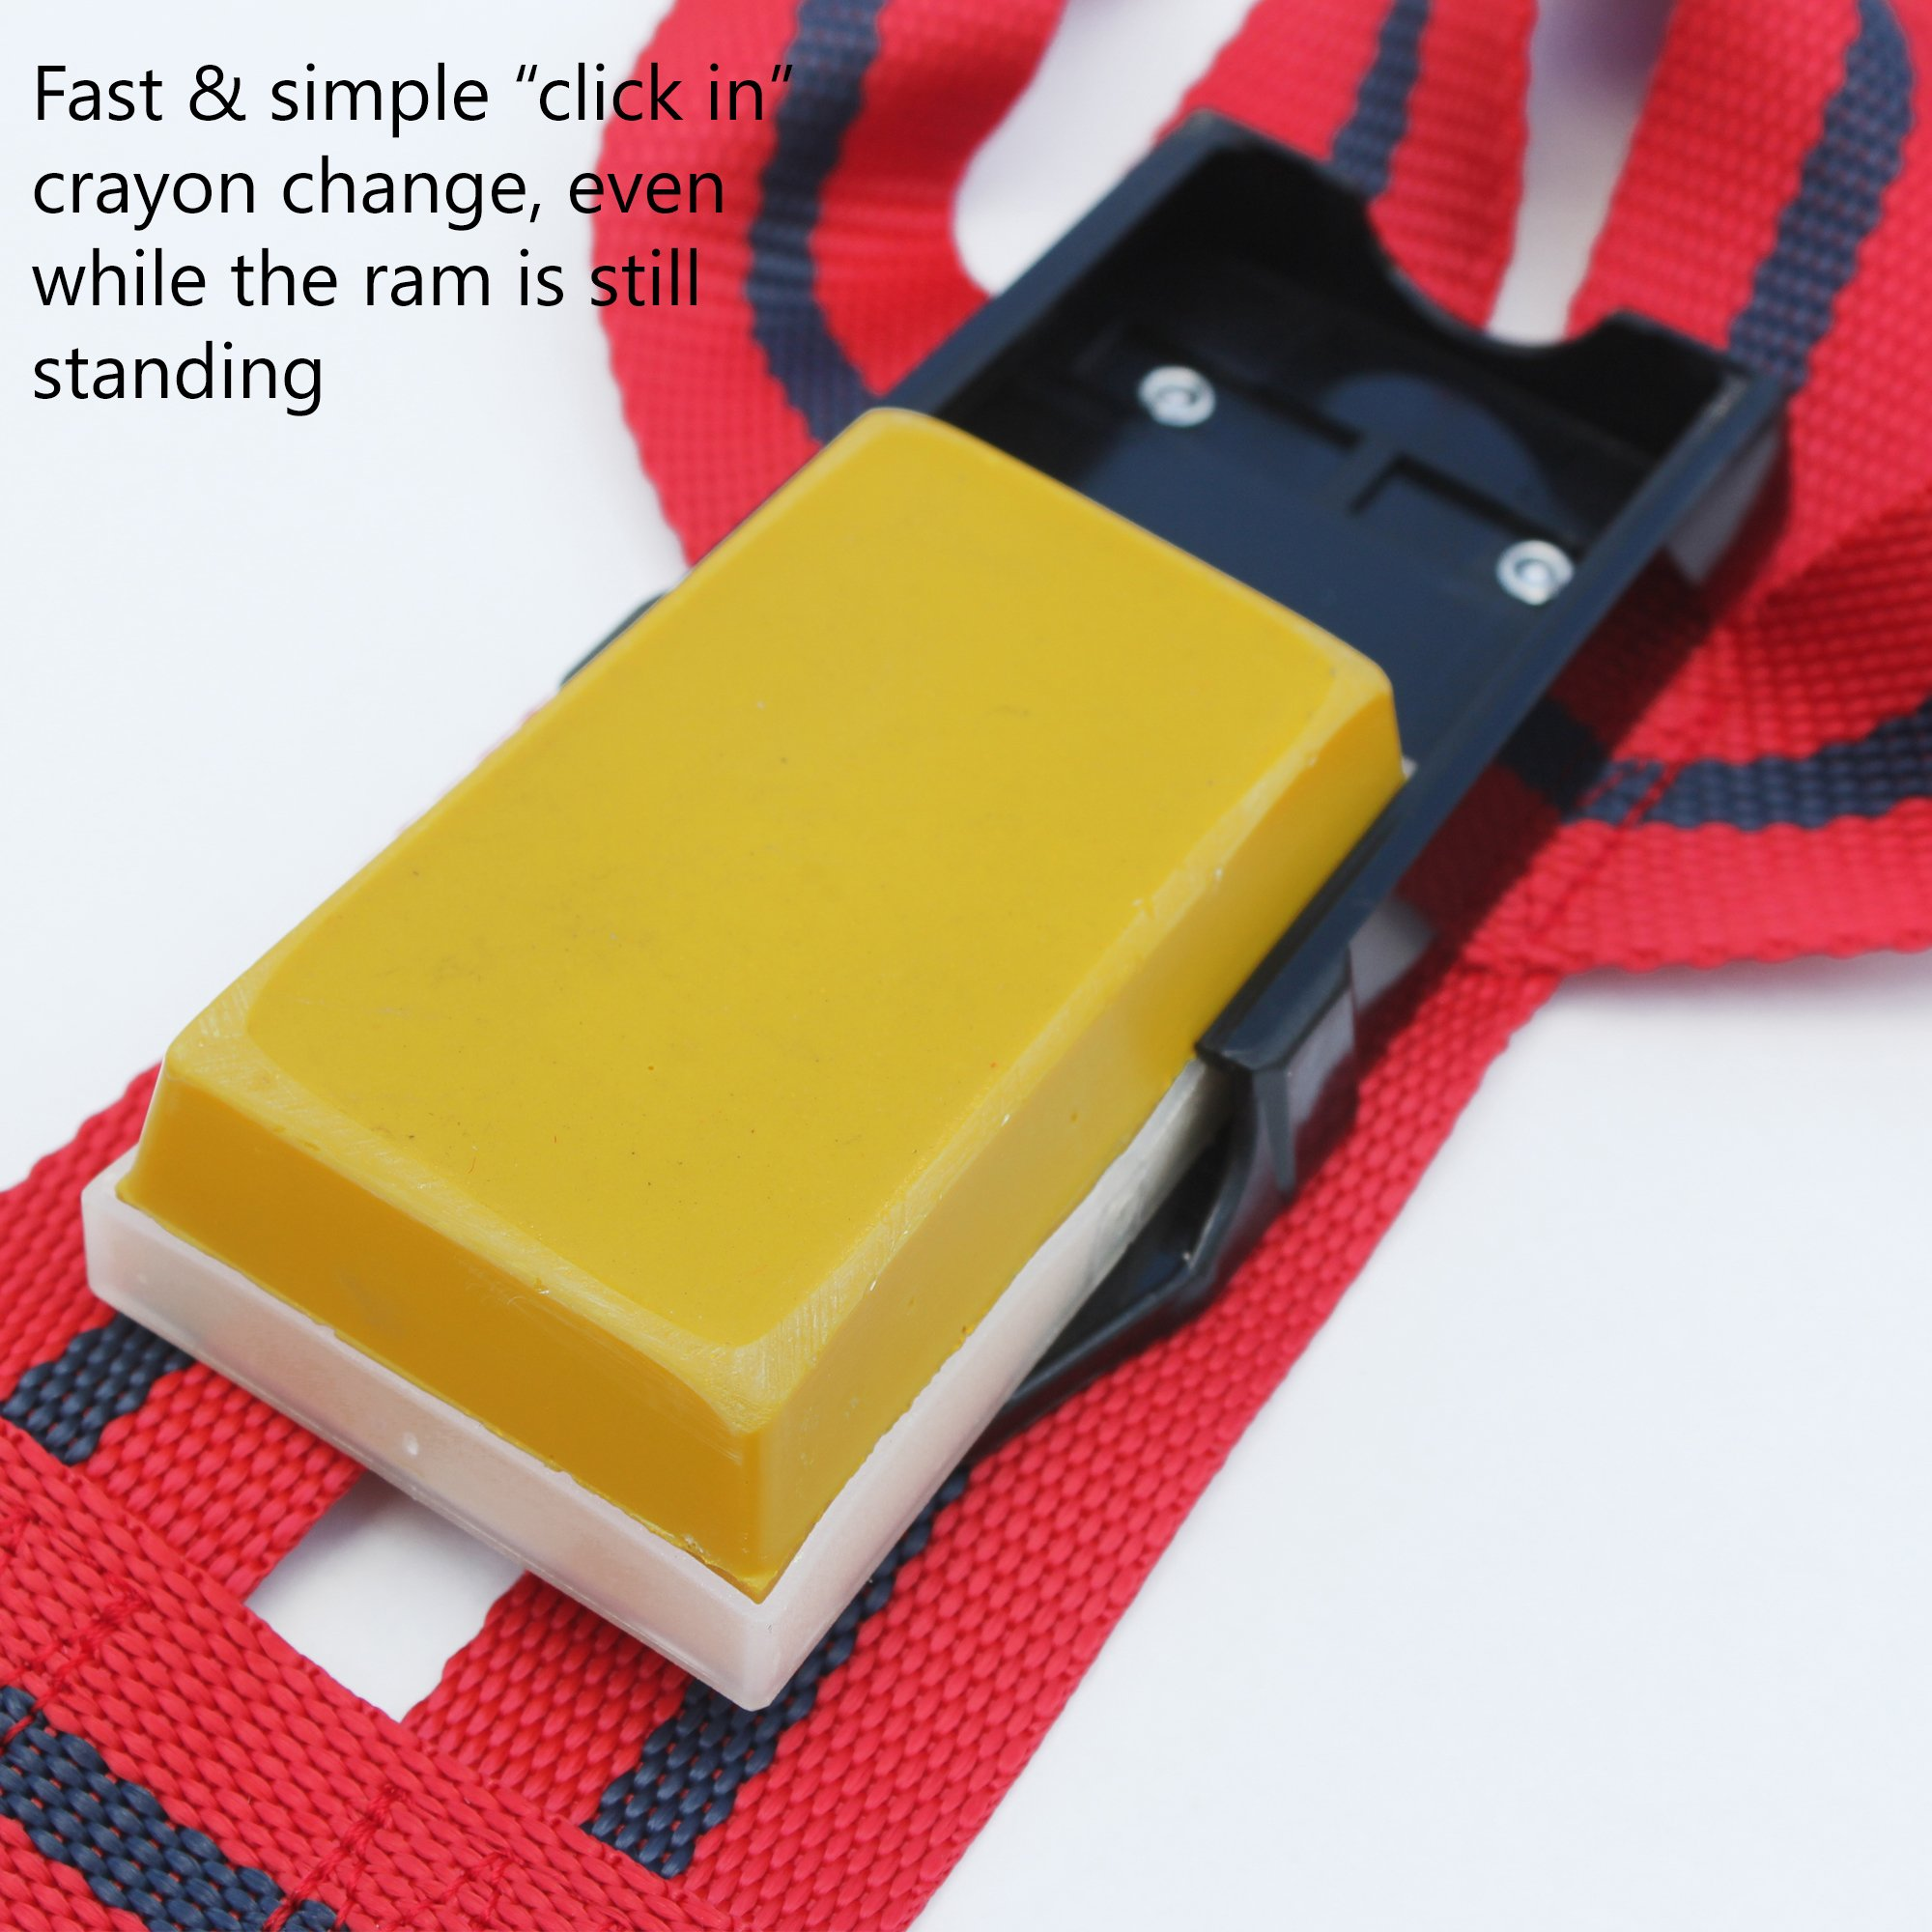 MATINGMARK Deluxe Ram Marking Harness for Monitoring Breeding Sheep & Goats by Rurtec, Crayon Block Marker System, Made in New Zealand - Standard Size (Crayon Sold Separately) by MATINGMARK (Image #6)